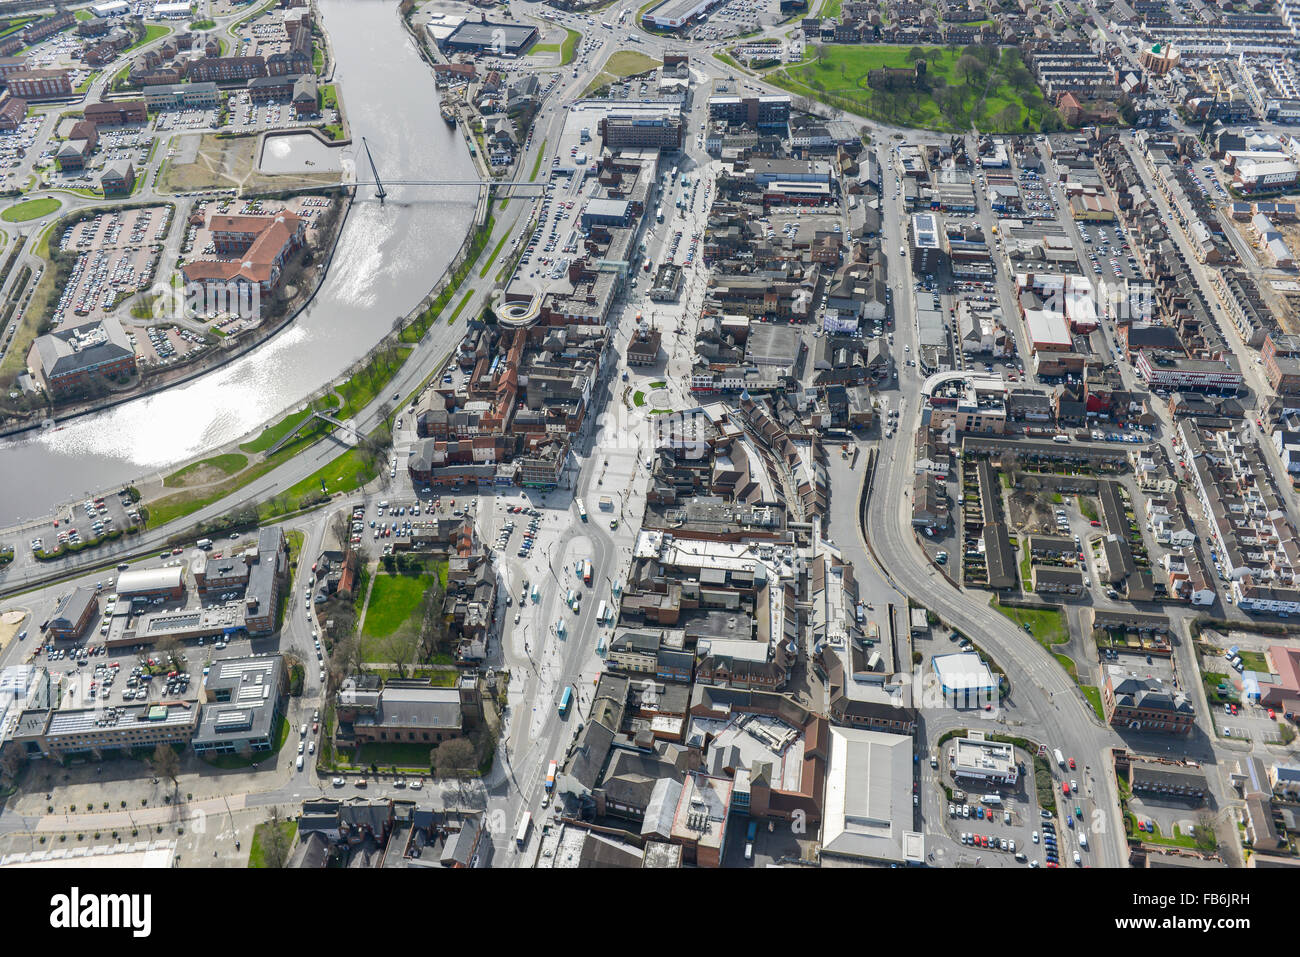 An aerial view of Stockton on Tees town centre and shopping precinct - Stock Image